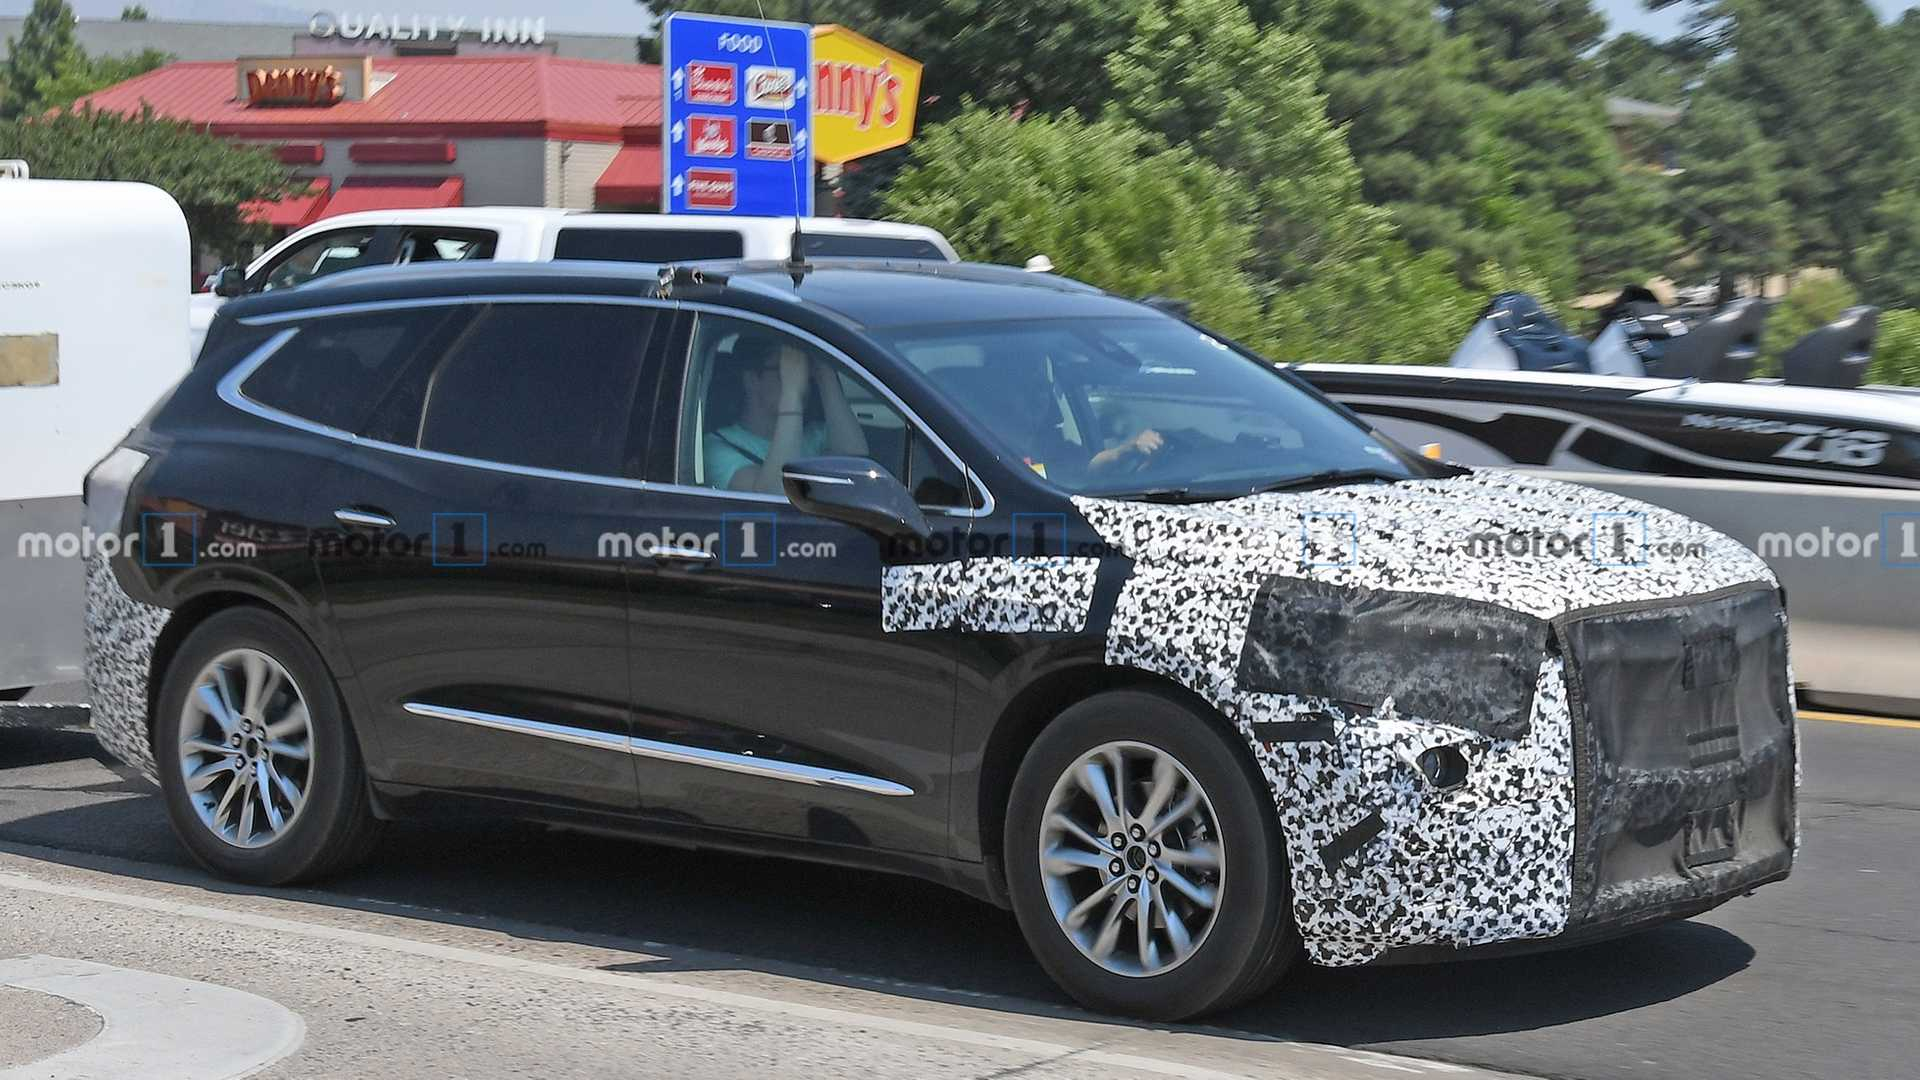 2021 Buick Enclave Spied For The First Time 2021 Buick Enclave Configurations, Deals, Dashboard